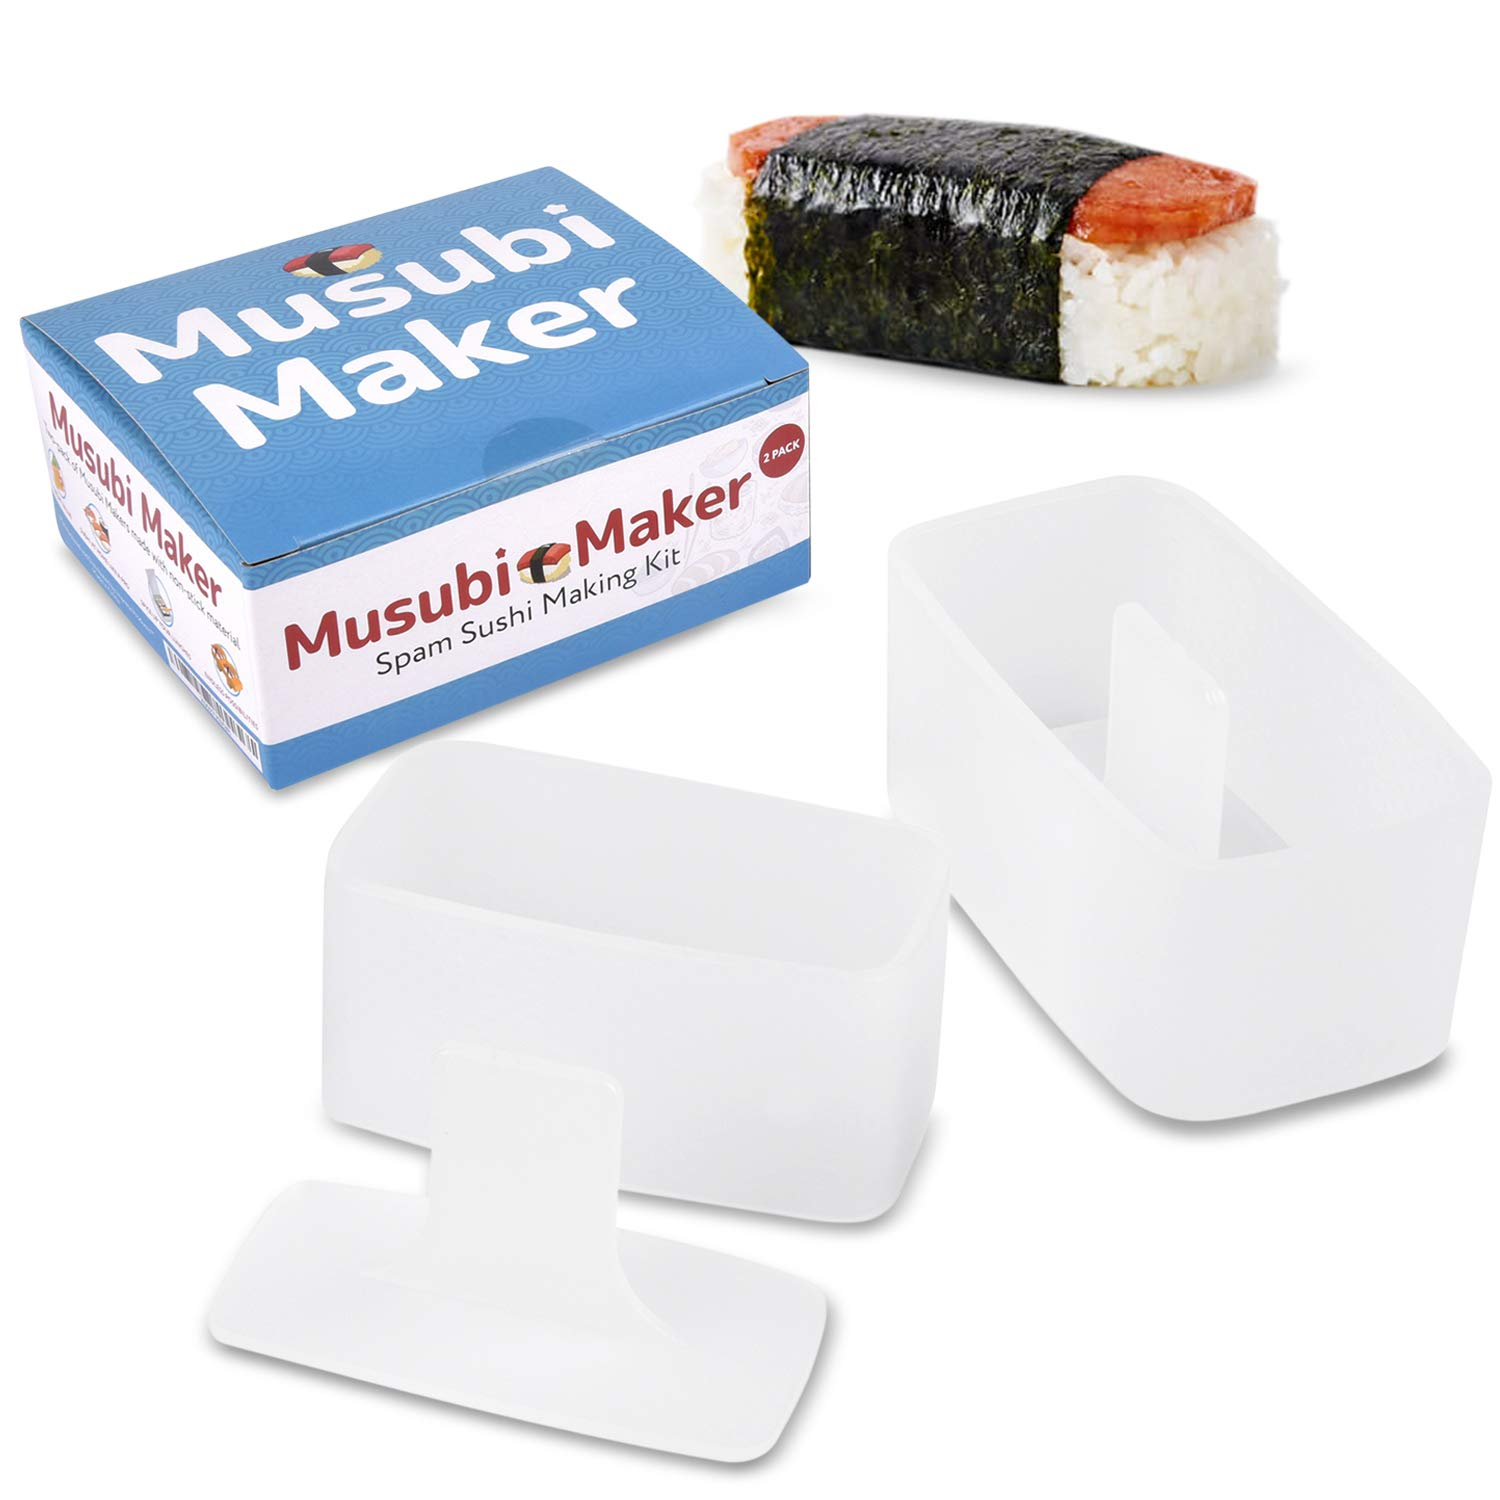 2 Pack Musubi Maker Press Bpa Free Non Stick Non Toxic Sushi Making Kit Spam Musubi Mold Make Your Own Professional Sushi At Home Hawaiian Spam Musubi Kimbab Onigiri